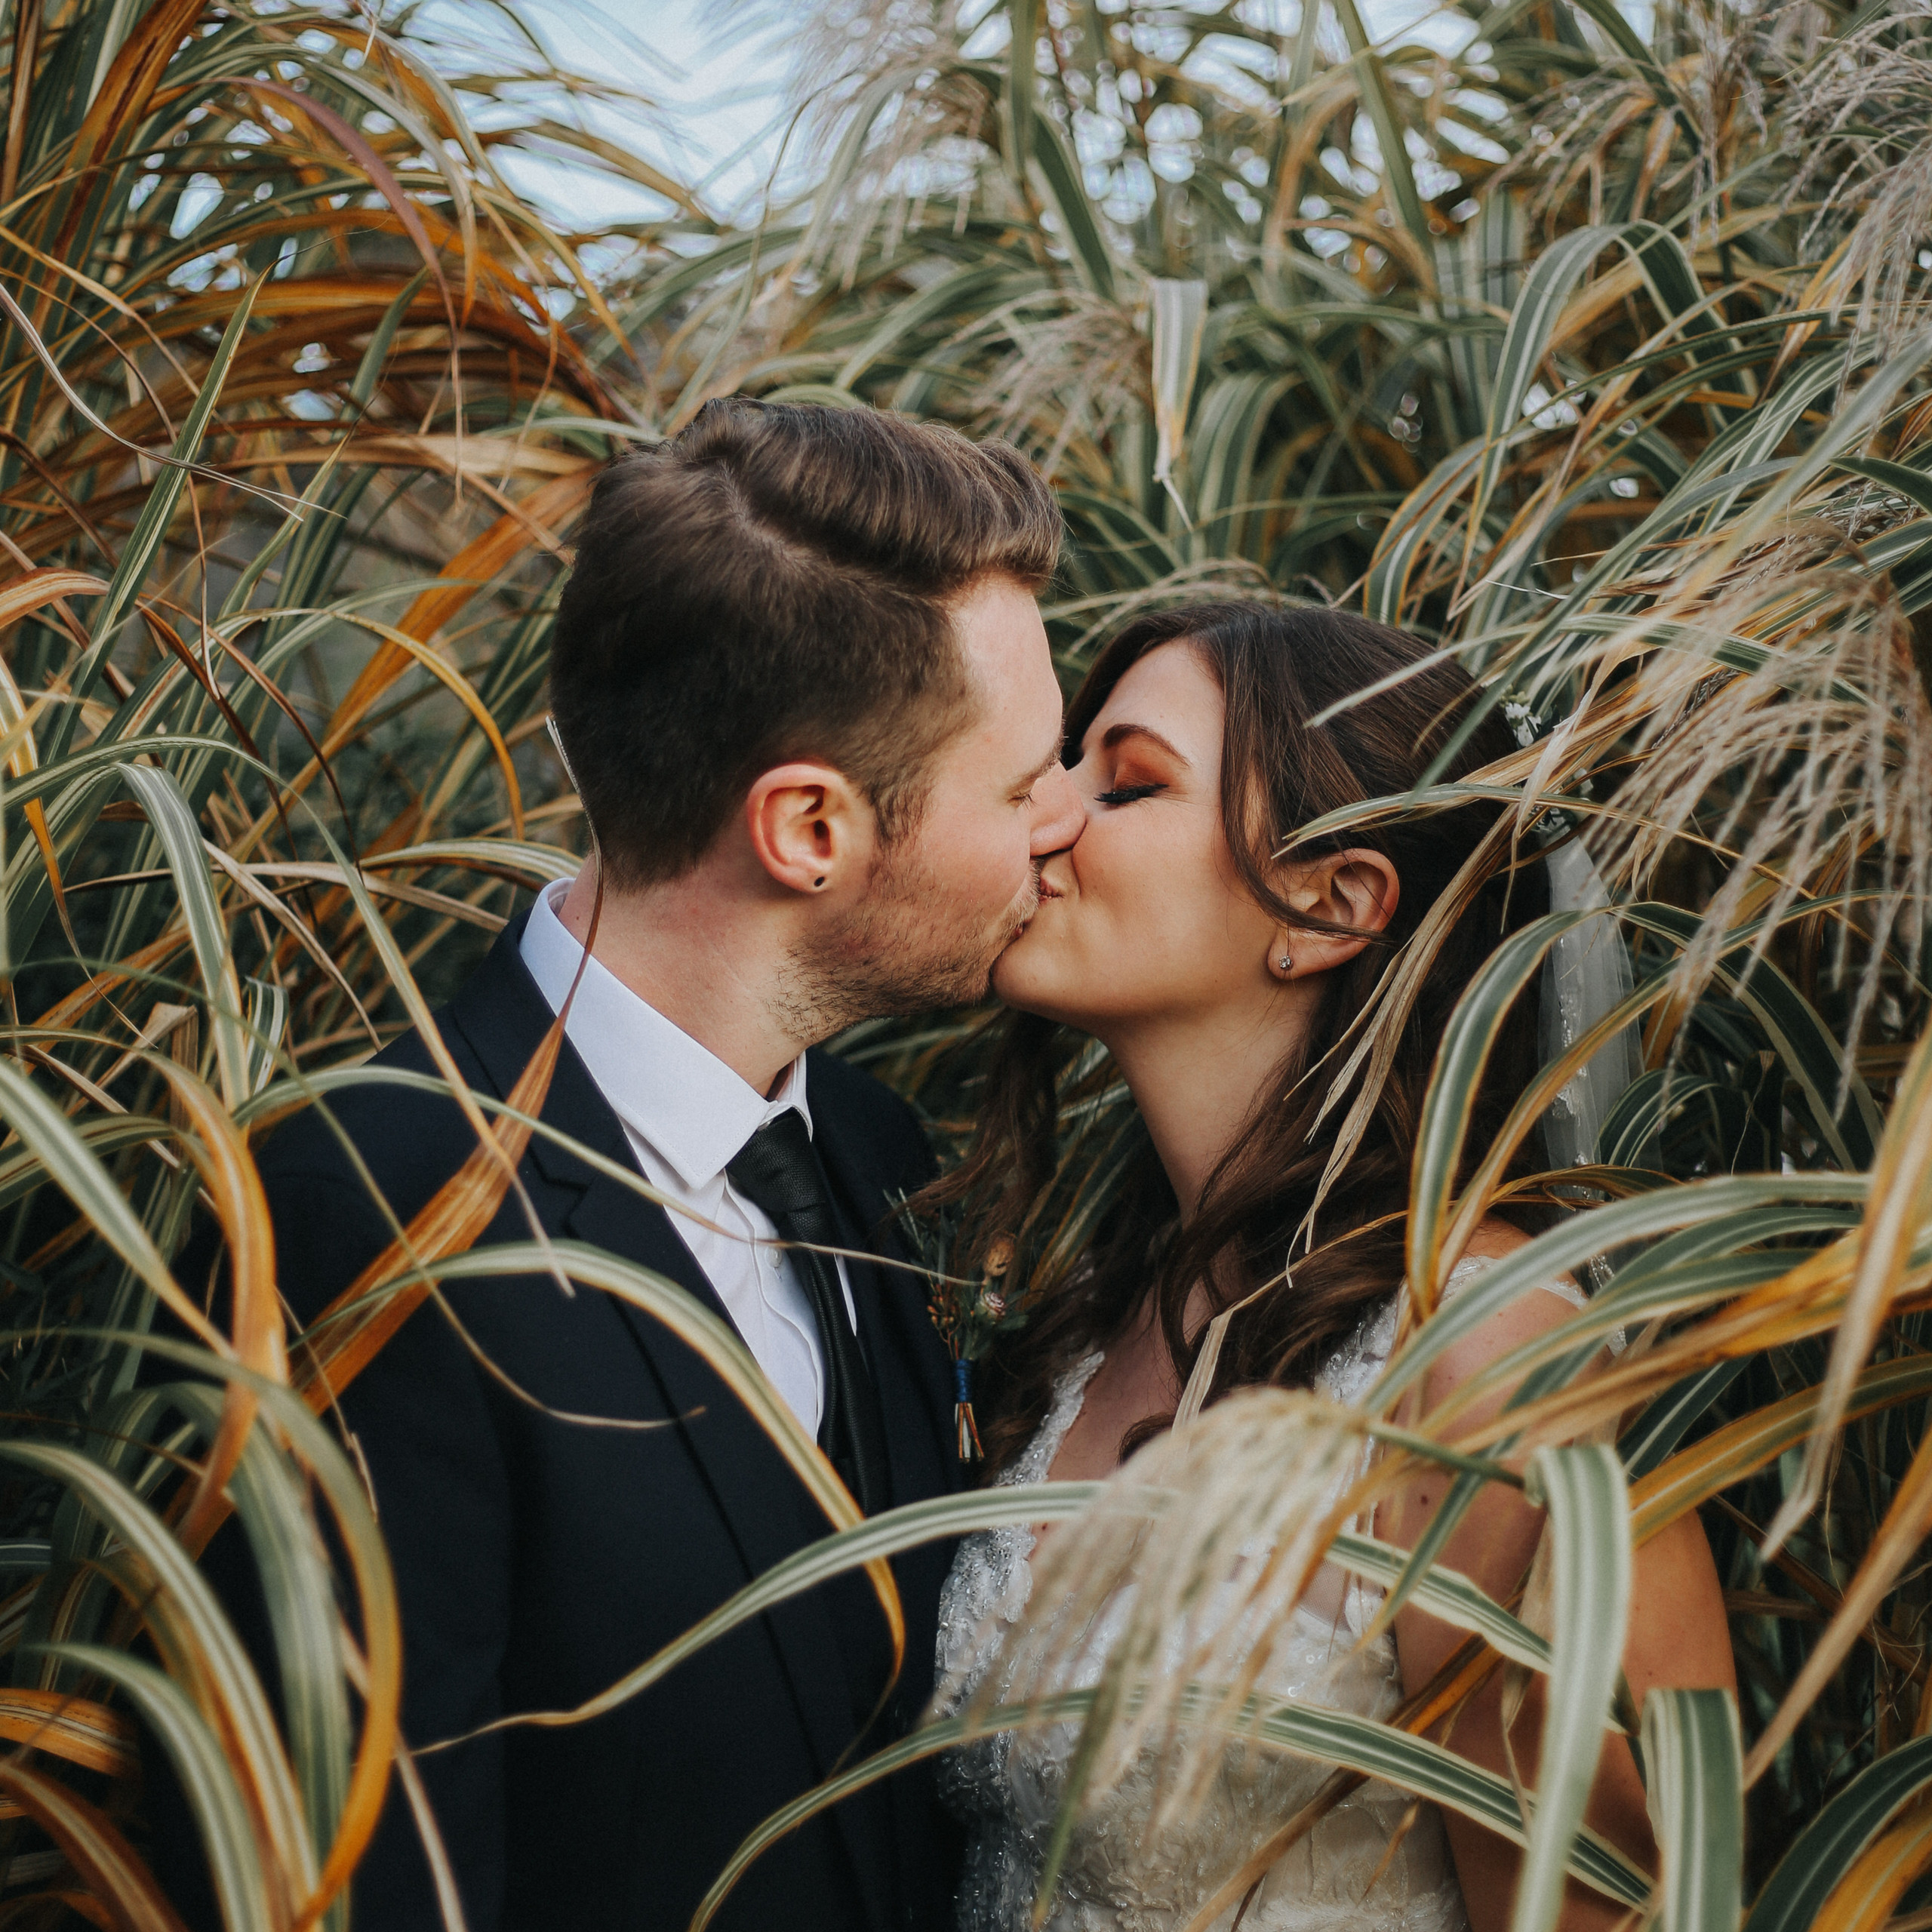 Bride and groom kiss in the reeds at wedding at wadhurst castle